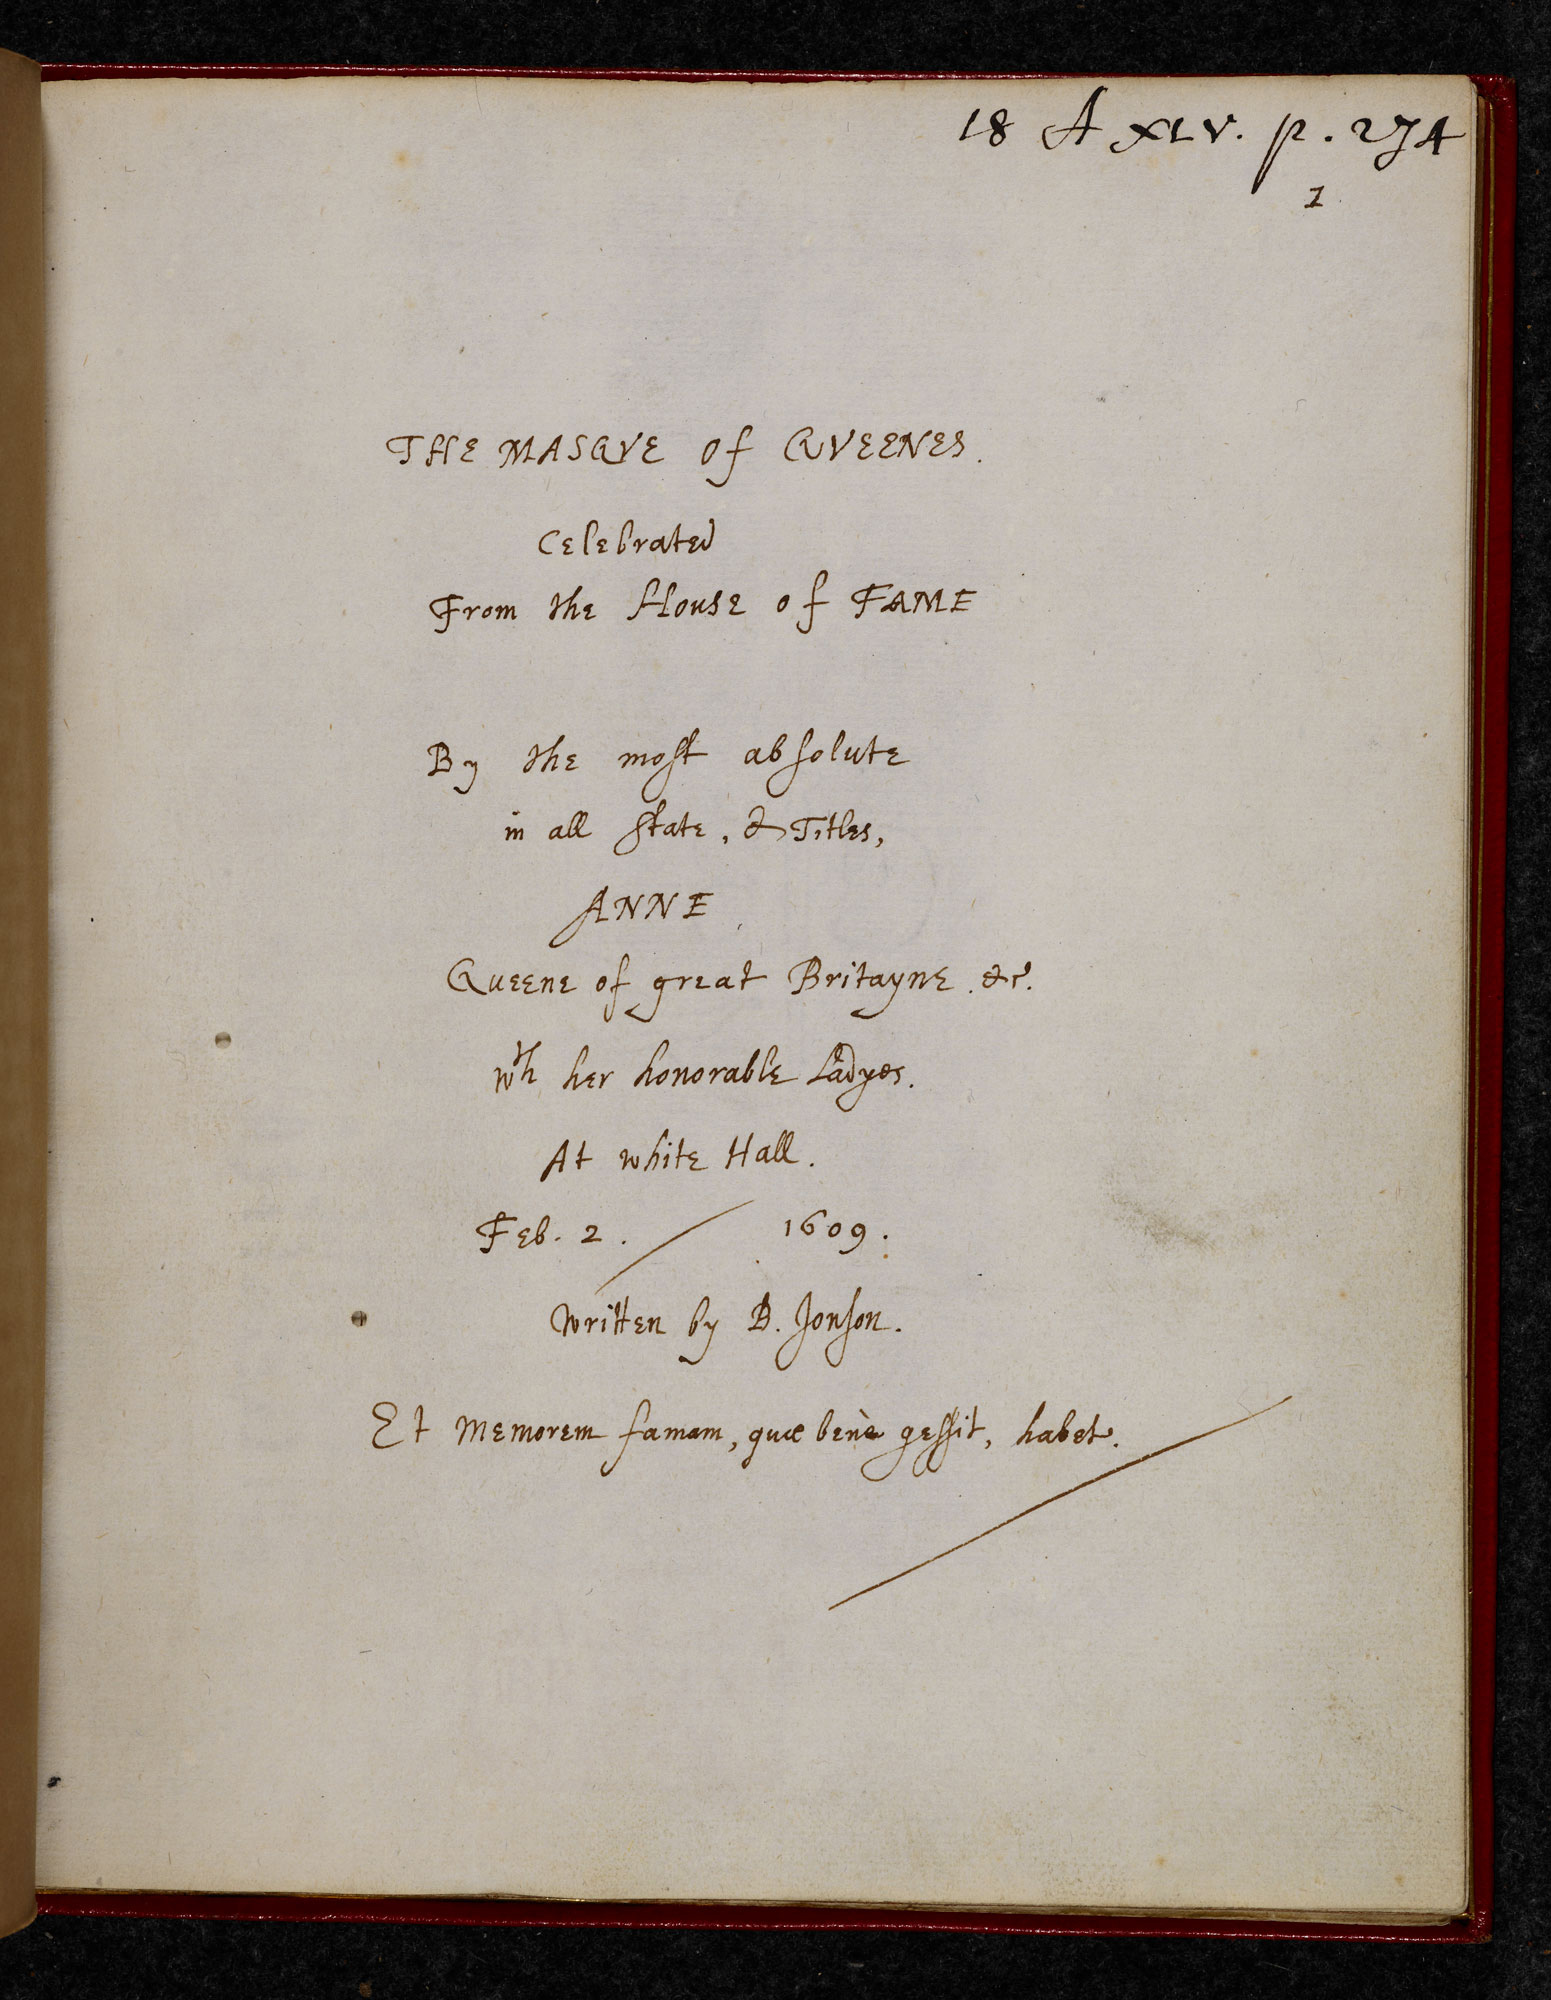 Autograph manuscript of Ben Jonson's The Masque of Queens, 1609